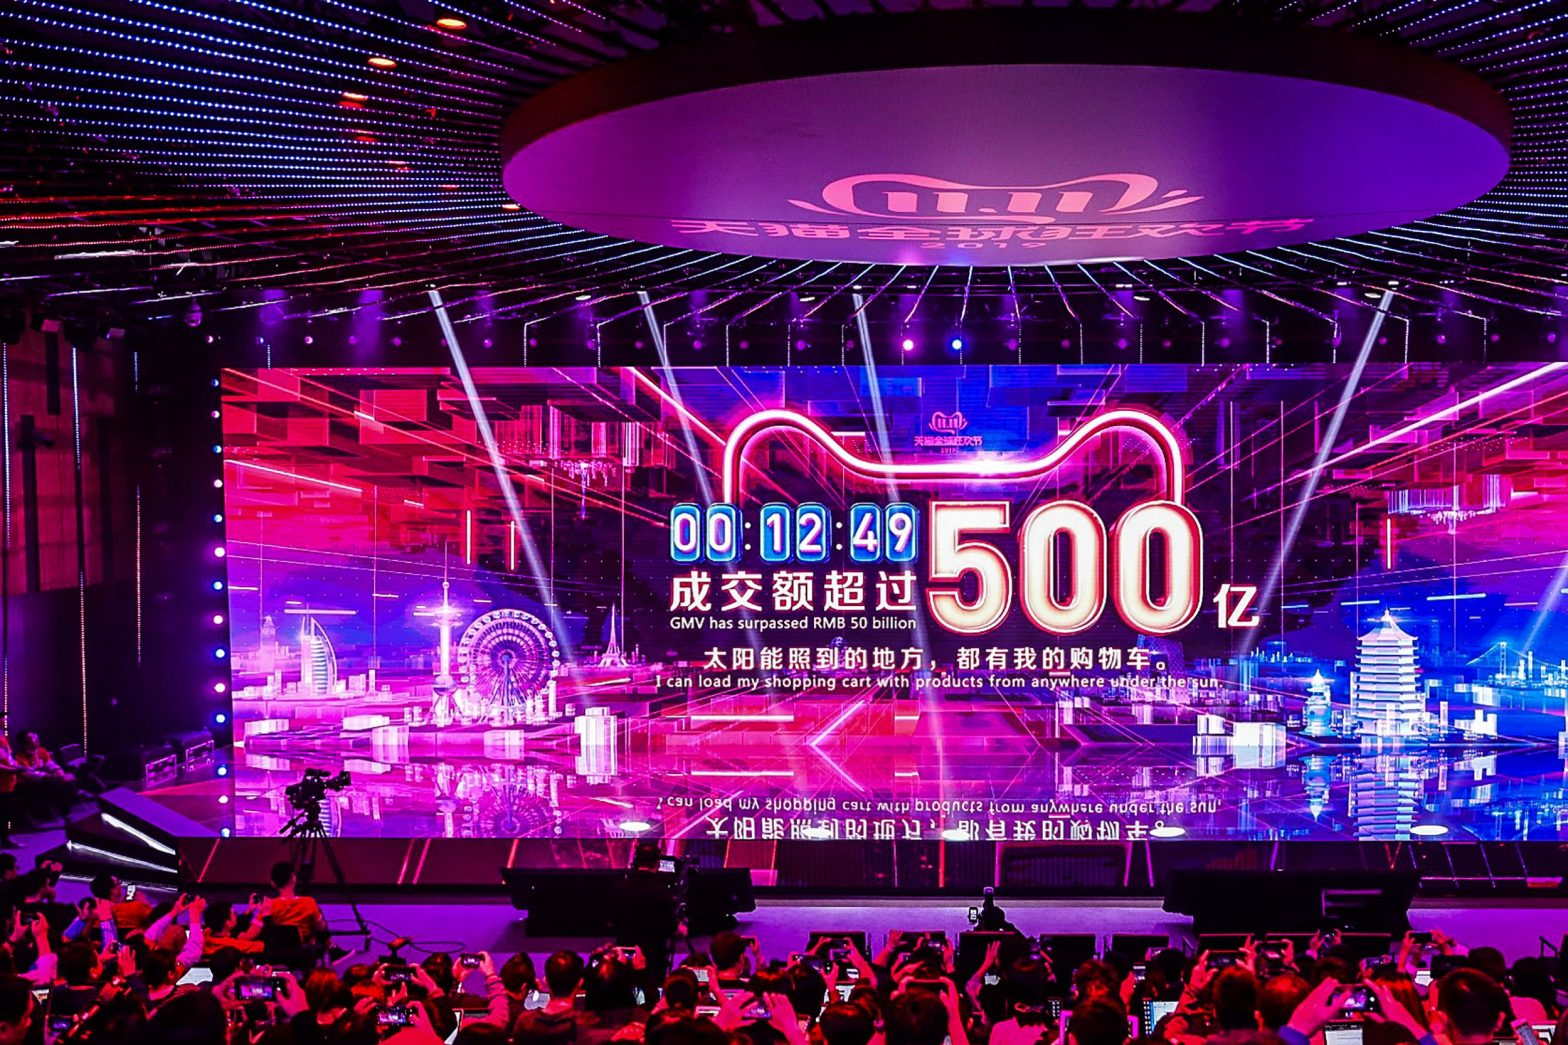 Alibaba breaks Singles Day record of more than $30 billion in sales and climbing – CNBC